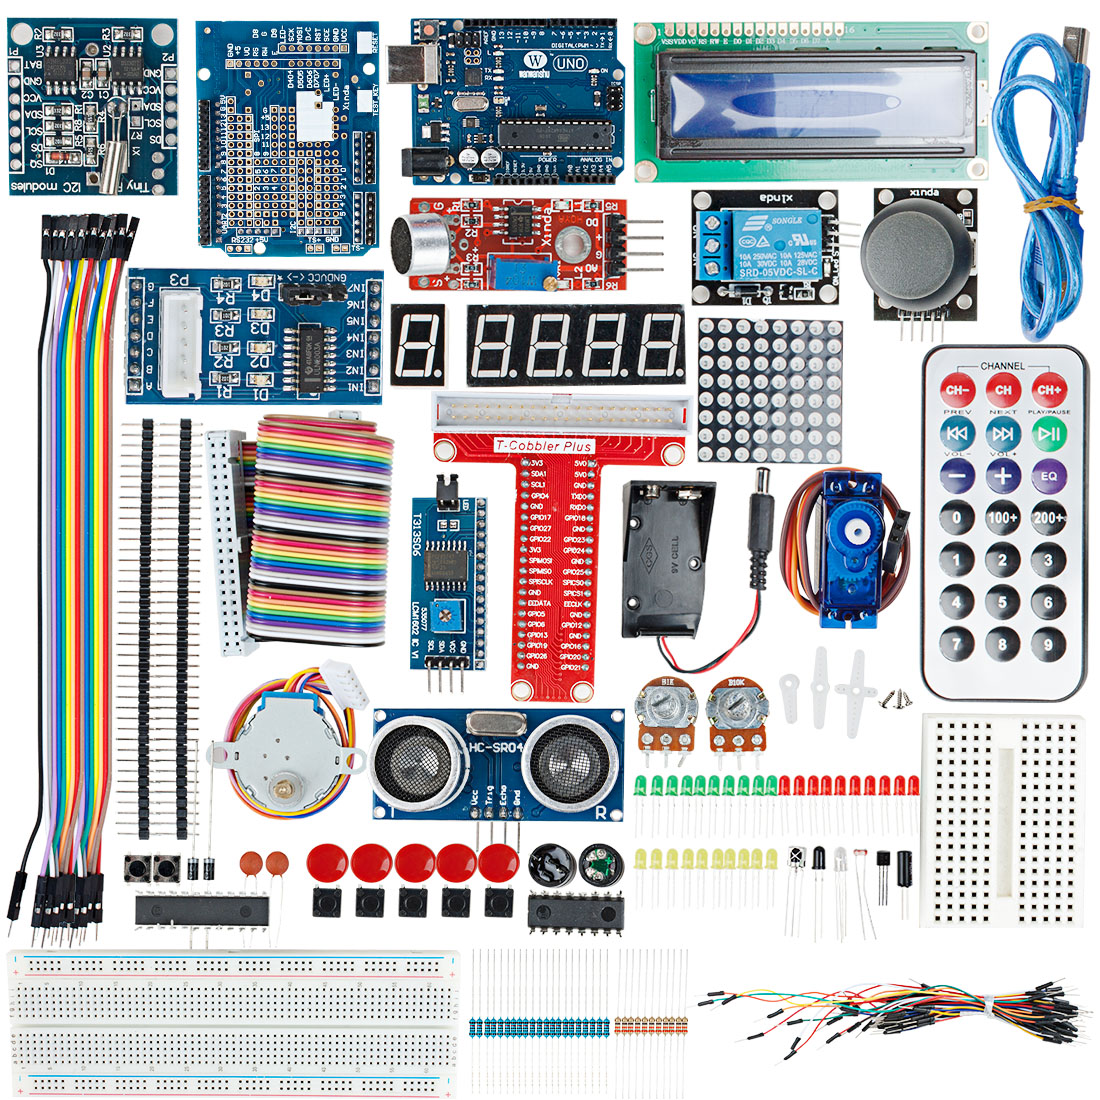 Uno R3 Board Project Basic Starter Kit For Arduino Diy Development Circuit Learning Set